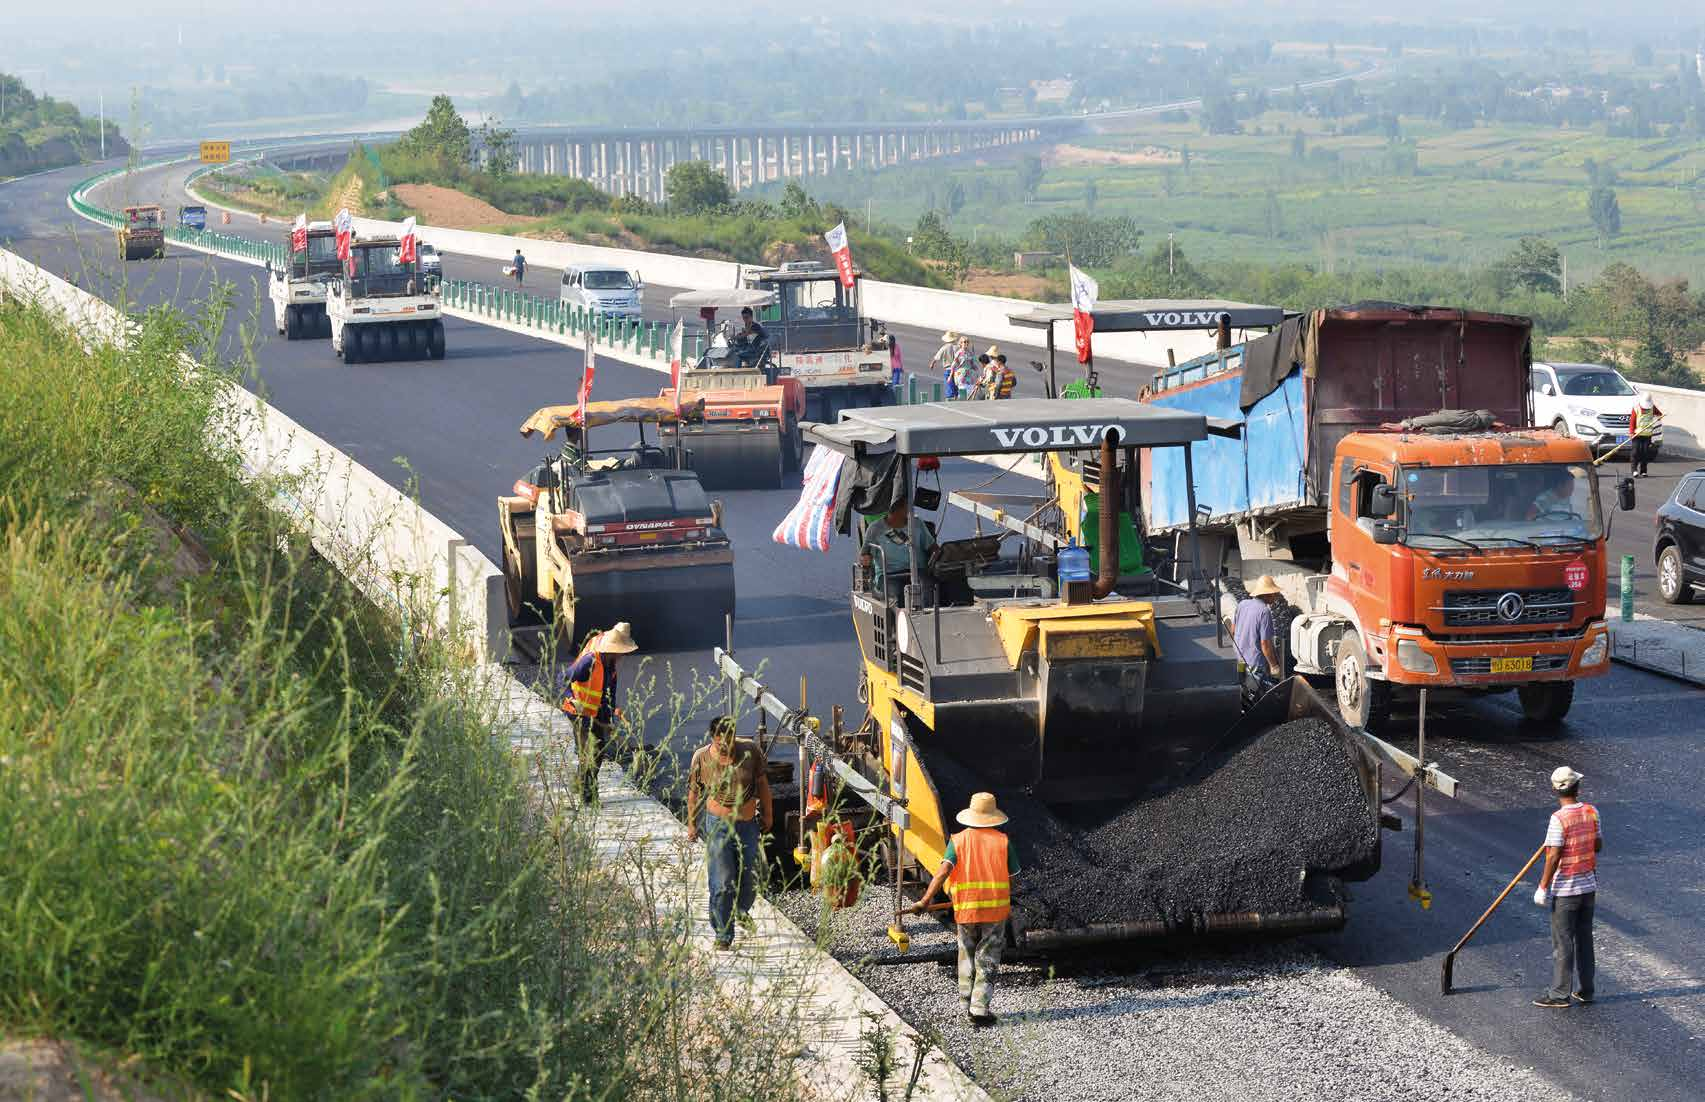 CINA Il famoso Esercito di terracotta di Xi an Zhao Wei, Equipment Manager, Shaanxi Road and Bridge Group Le vibrofinitrici ABG8820 operano 14 ore al giorno Volvo CE è UN leader nel mercato delle